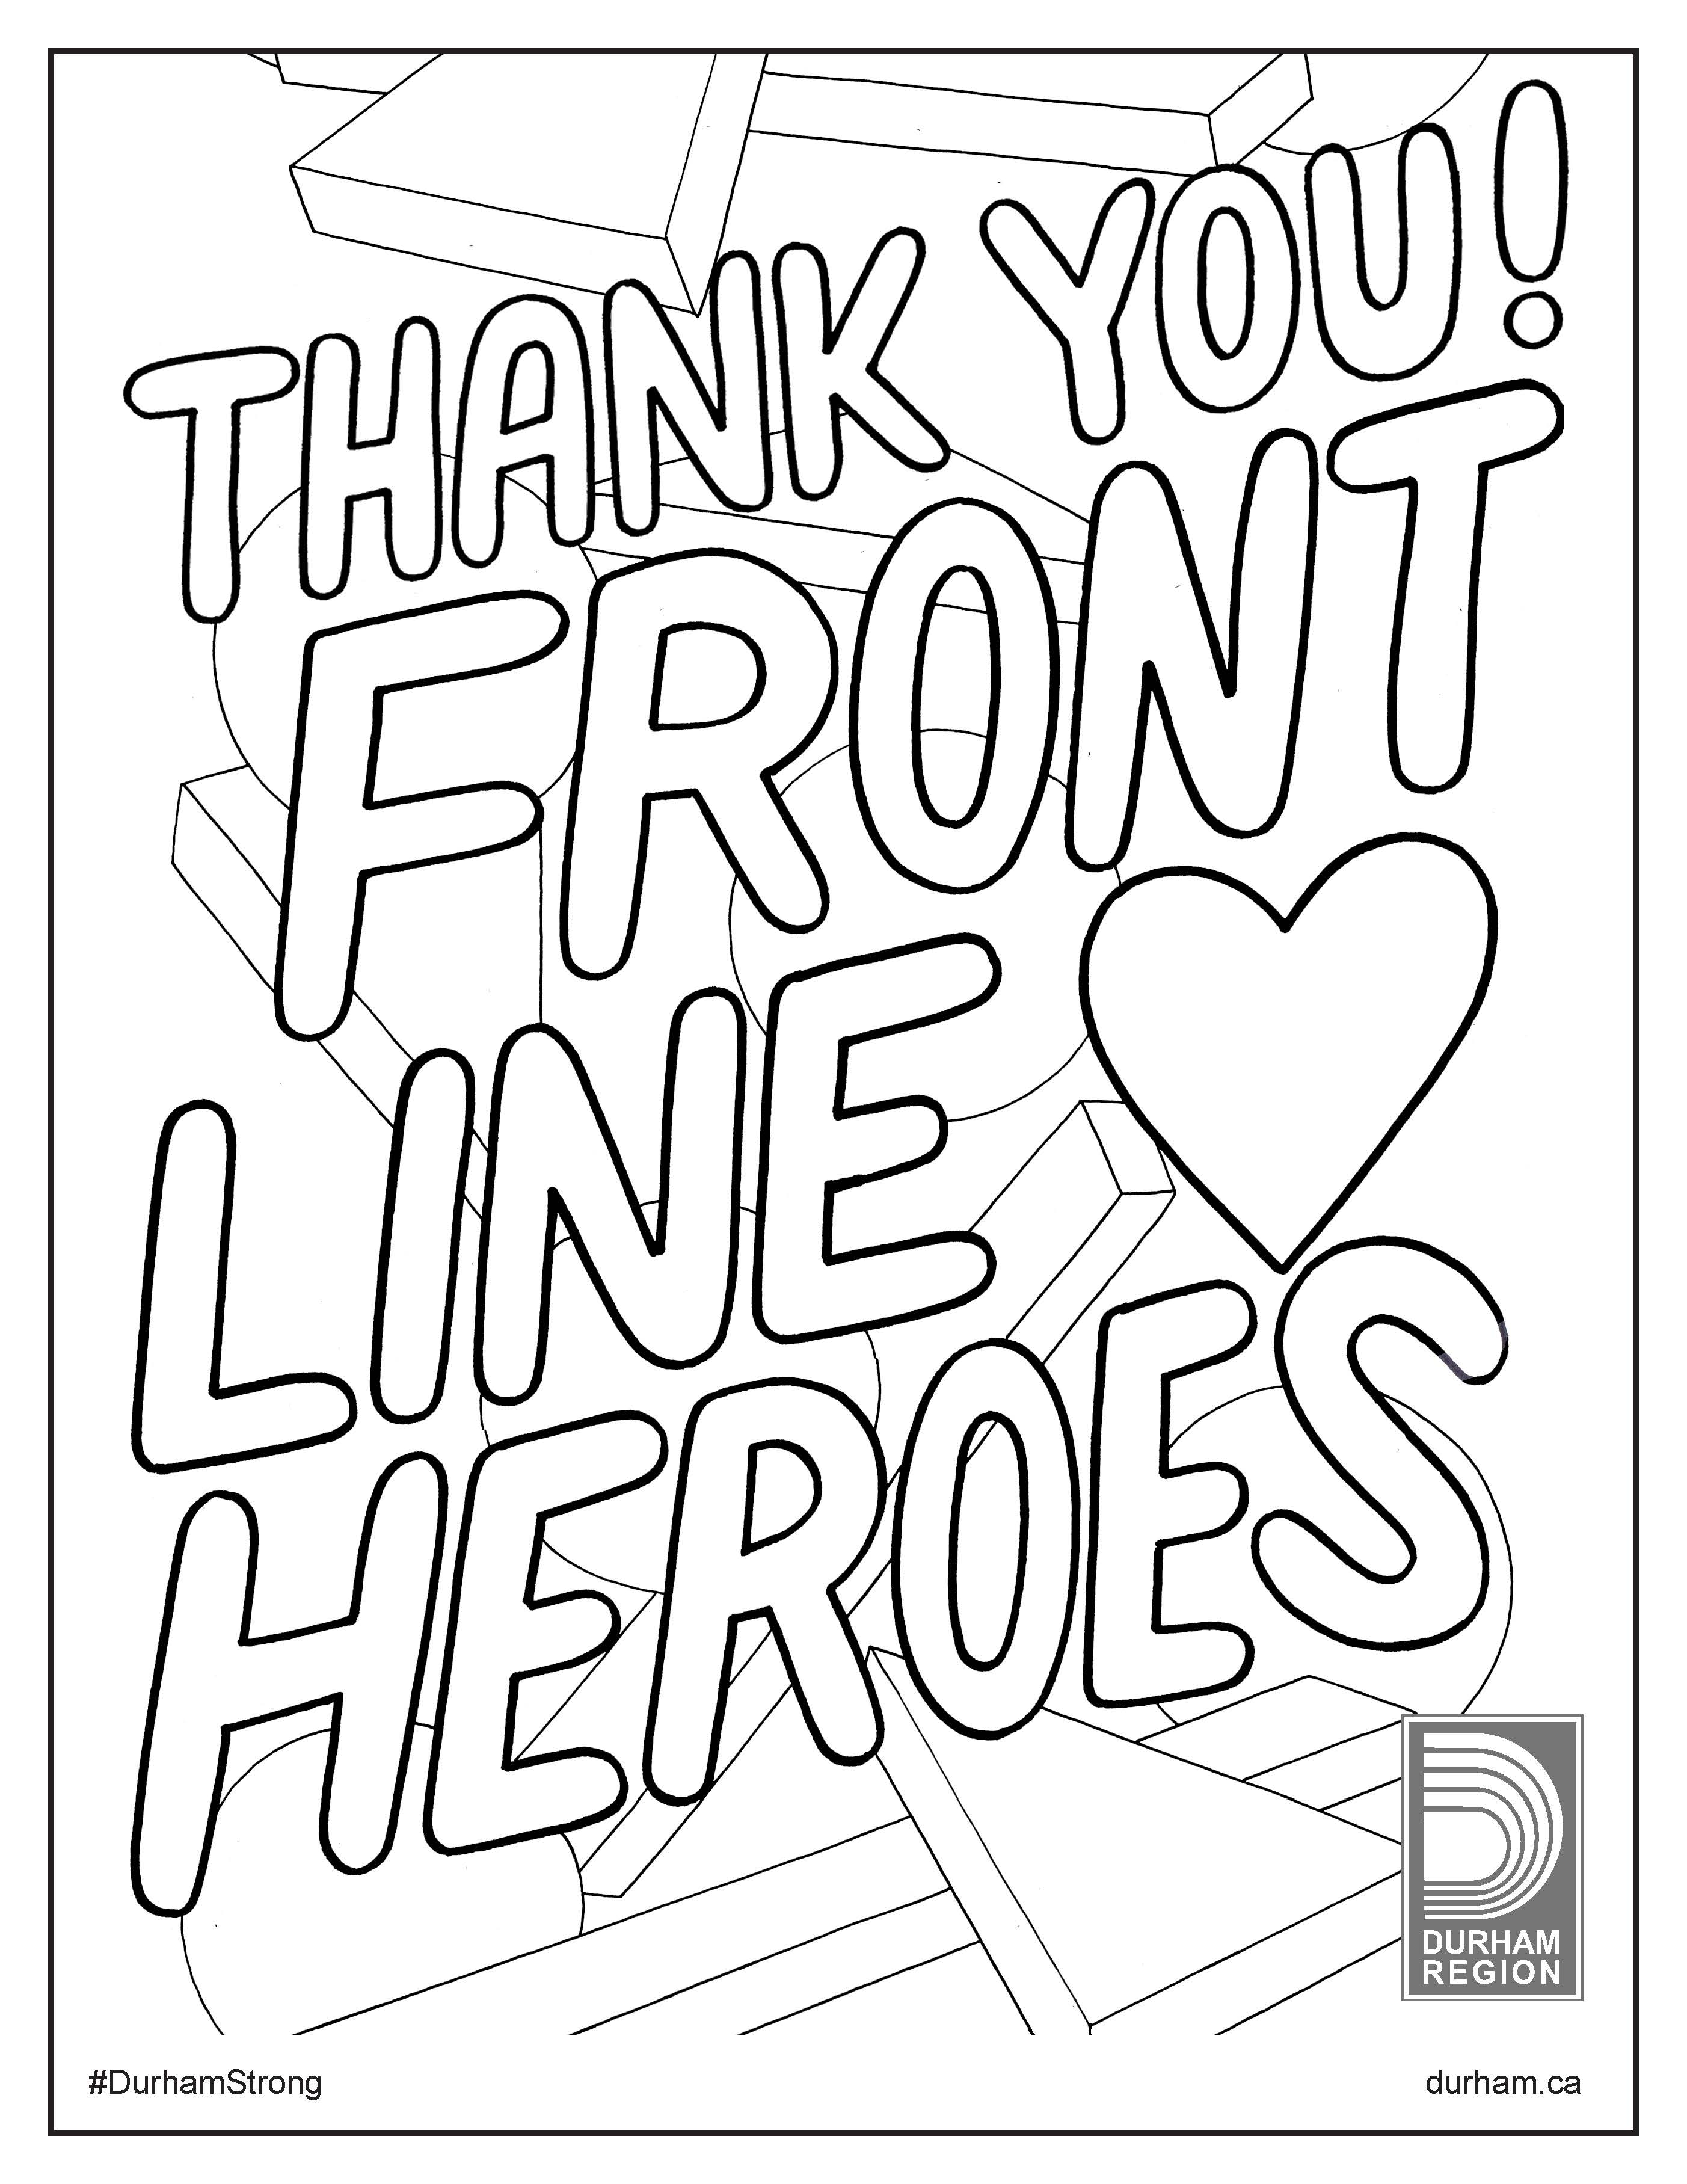 Illustration of thank you sign for front-line heroes